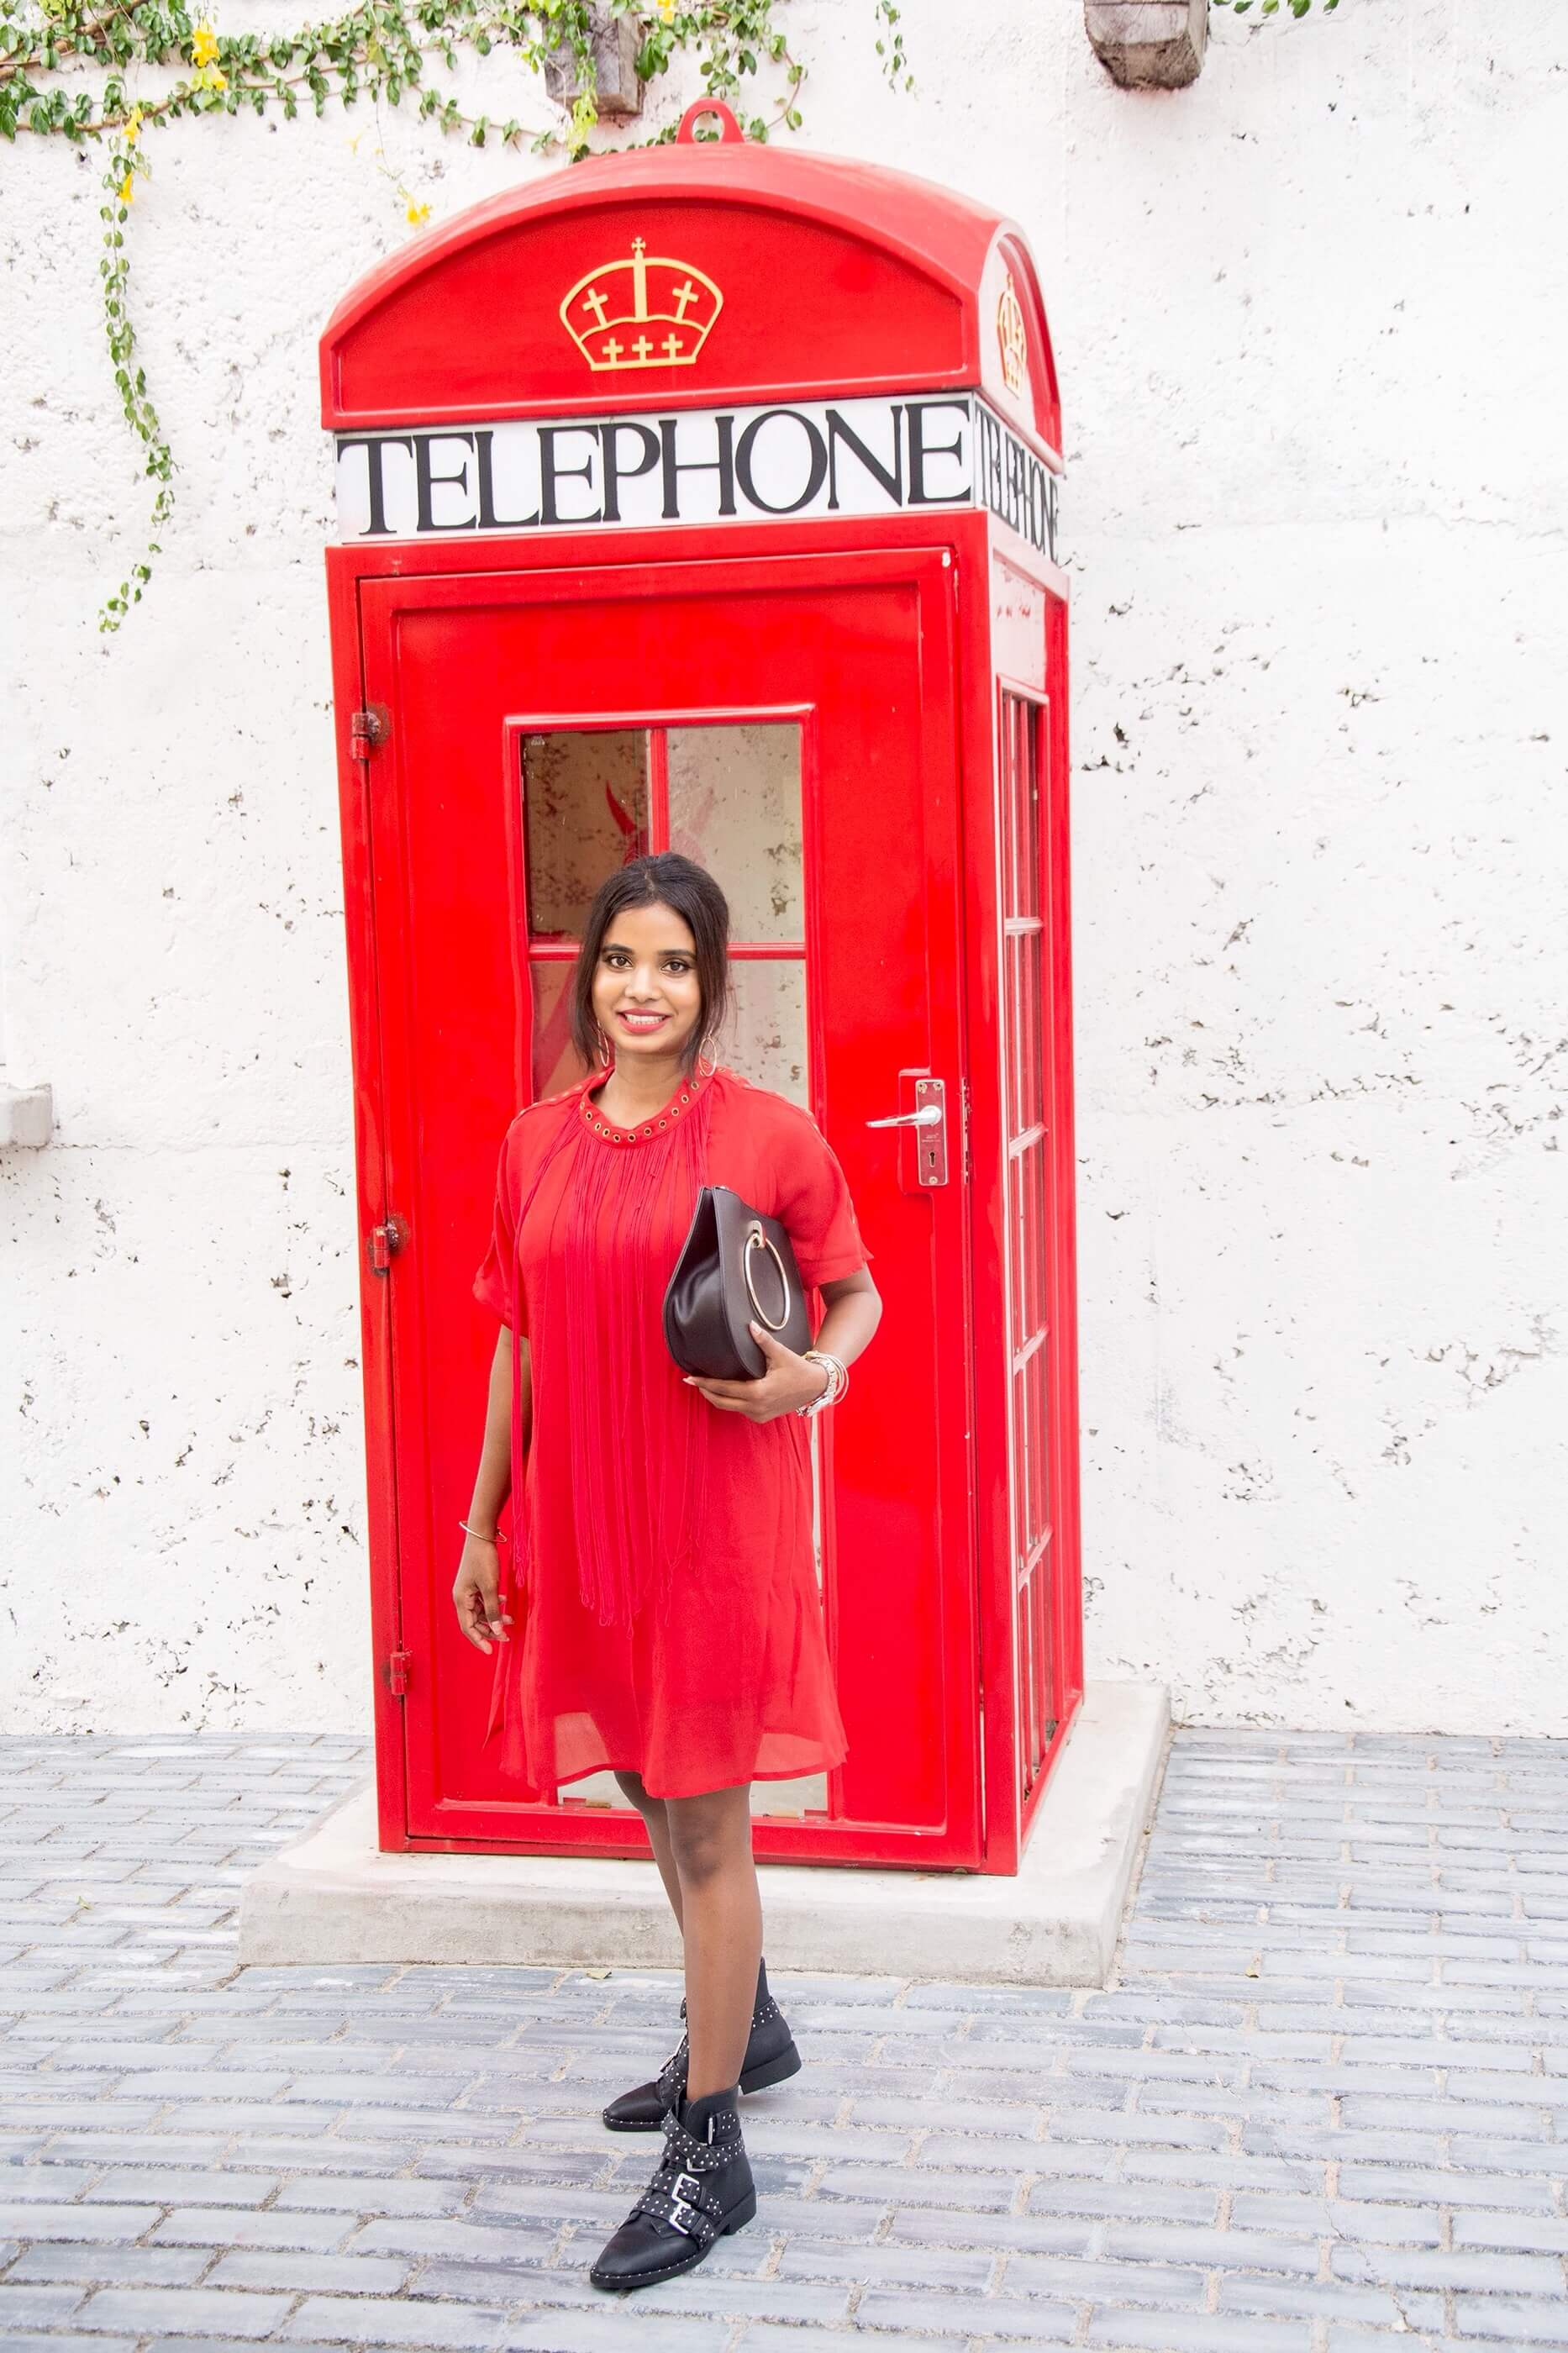 red fringed dress and telephone booth